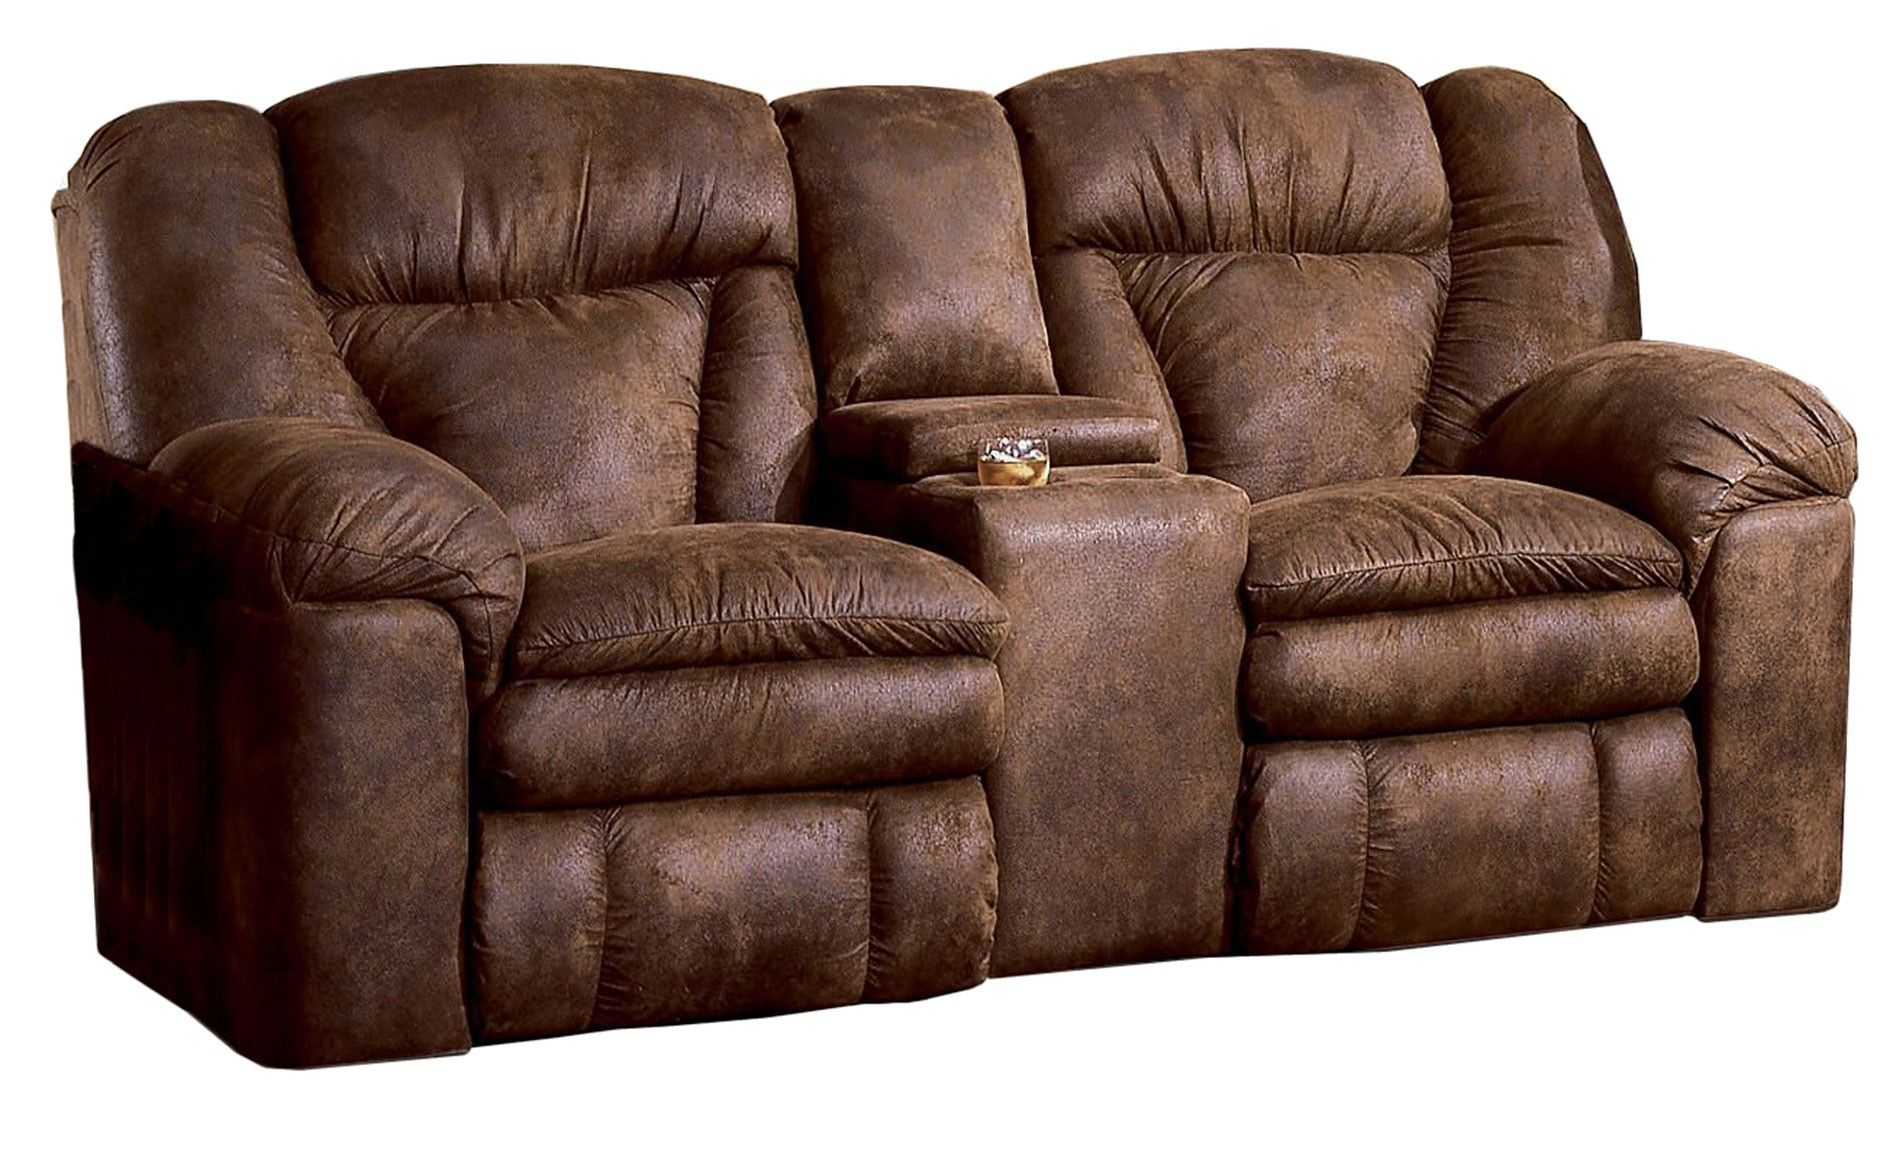 Double Media Room Recliners Lane Talon Double Reclining Loveseat With Storage Console